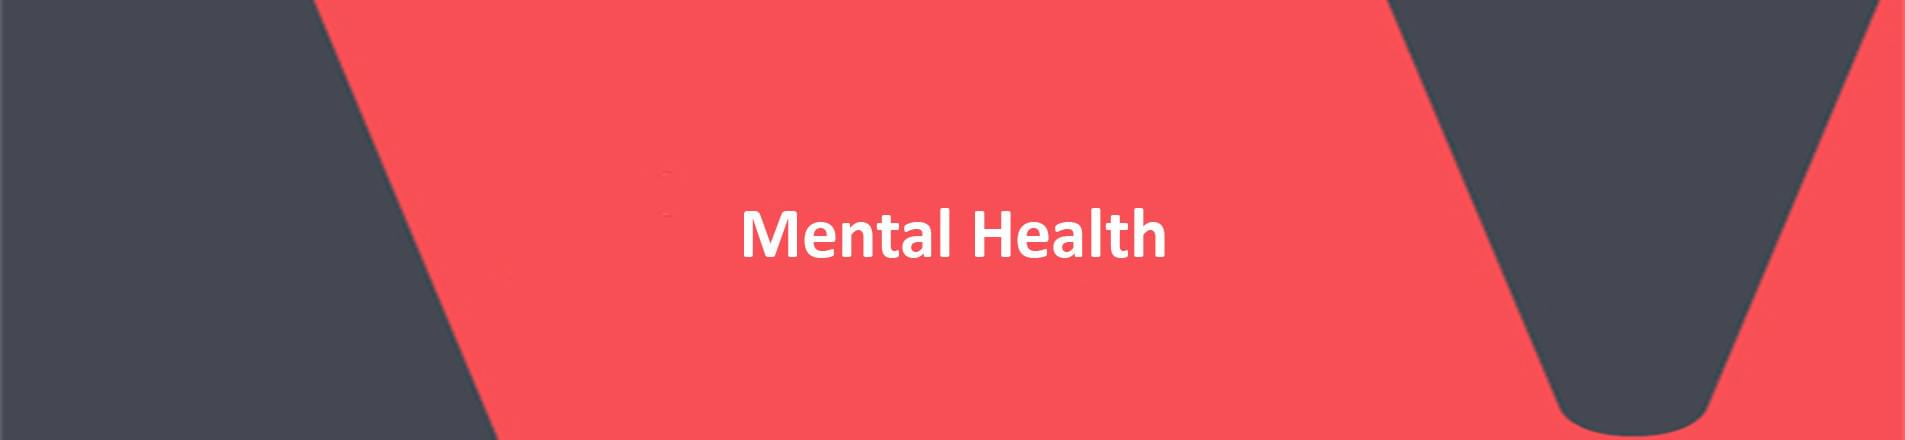 Mental Health written in white text on red background.